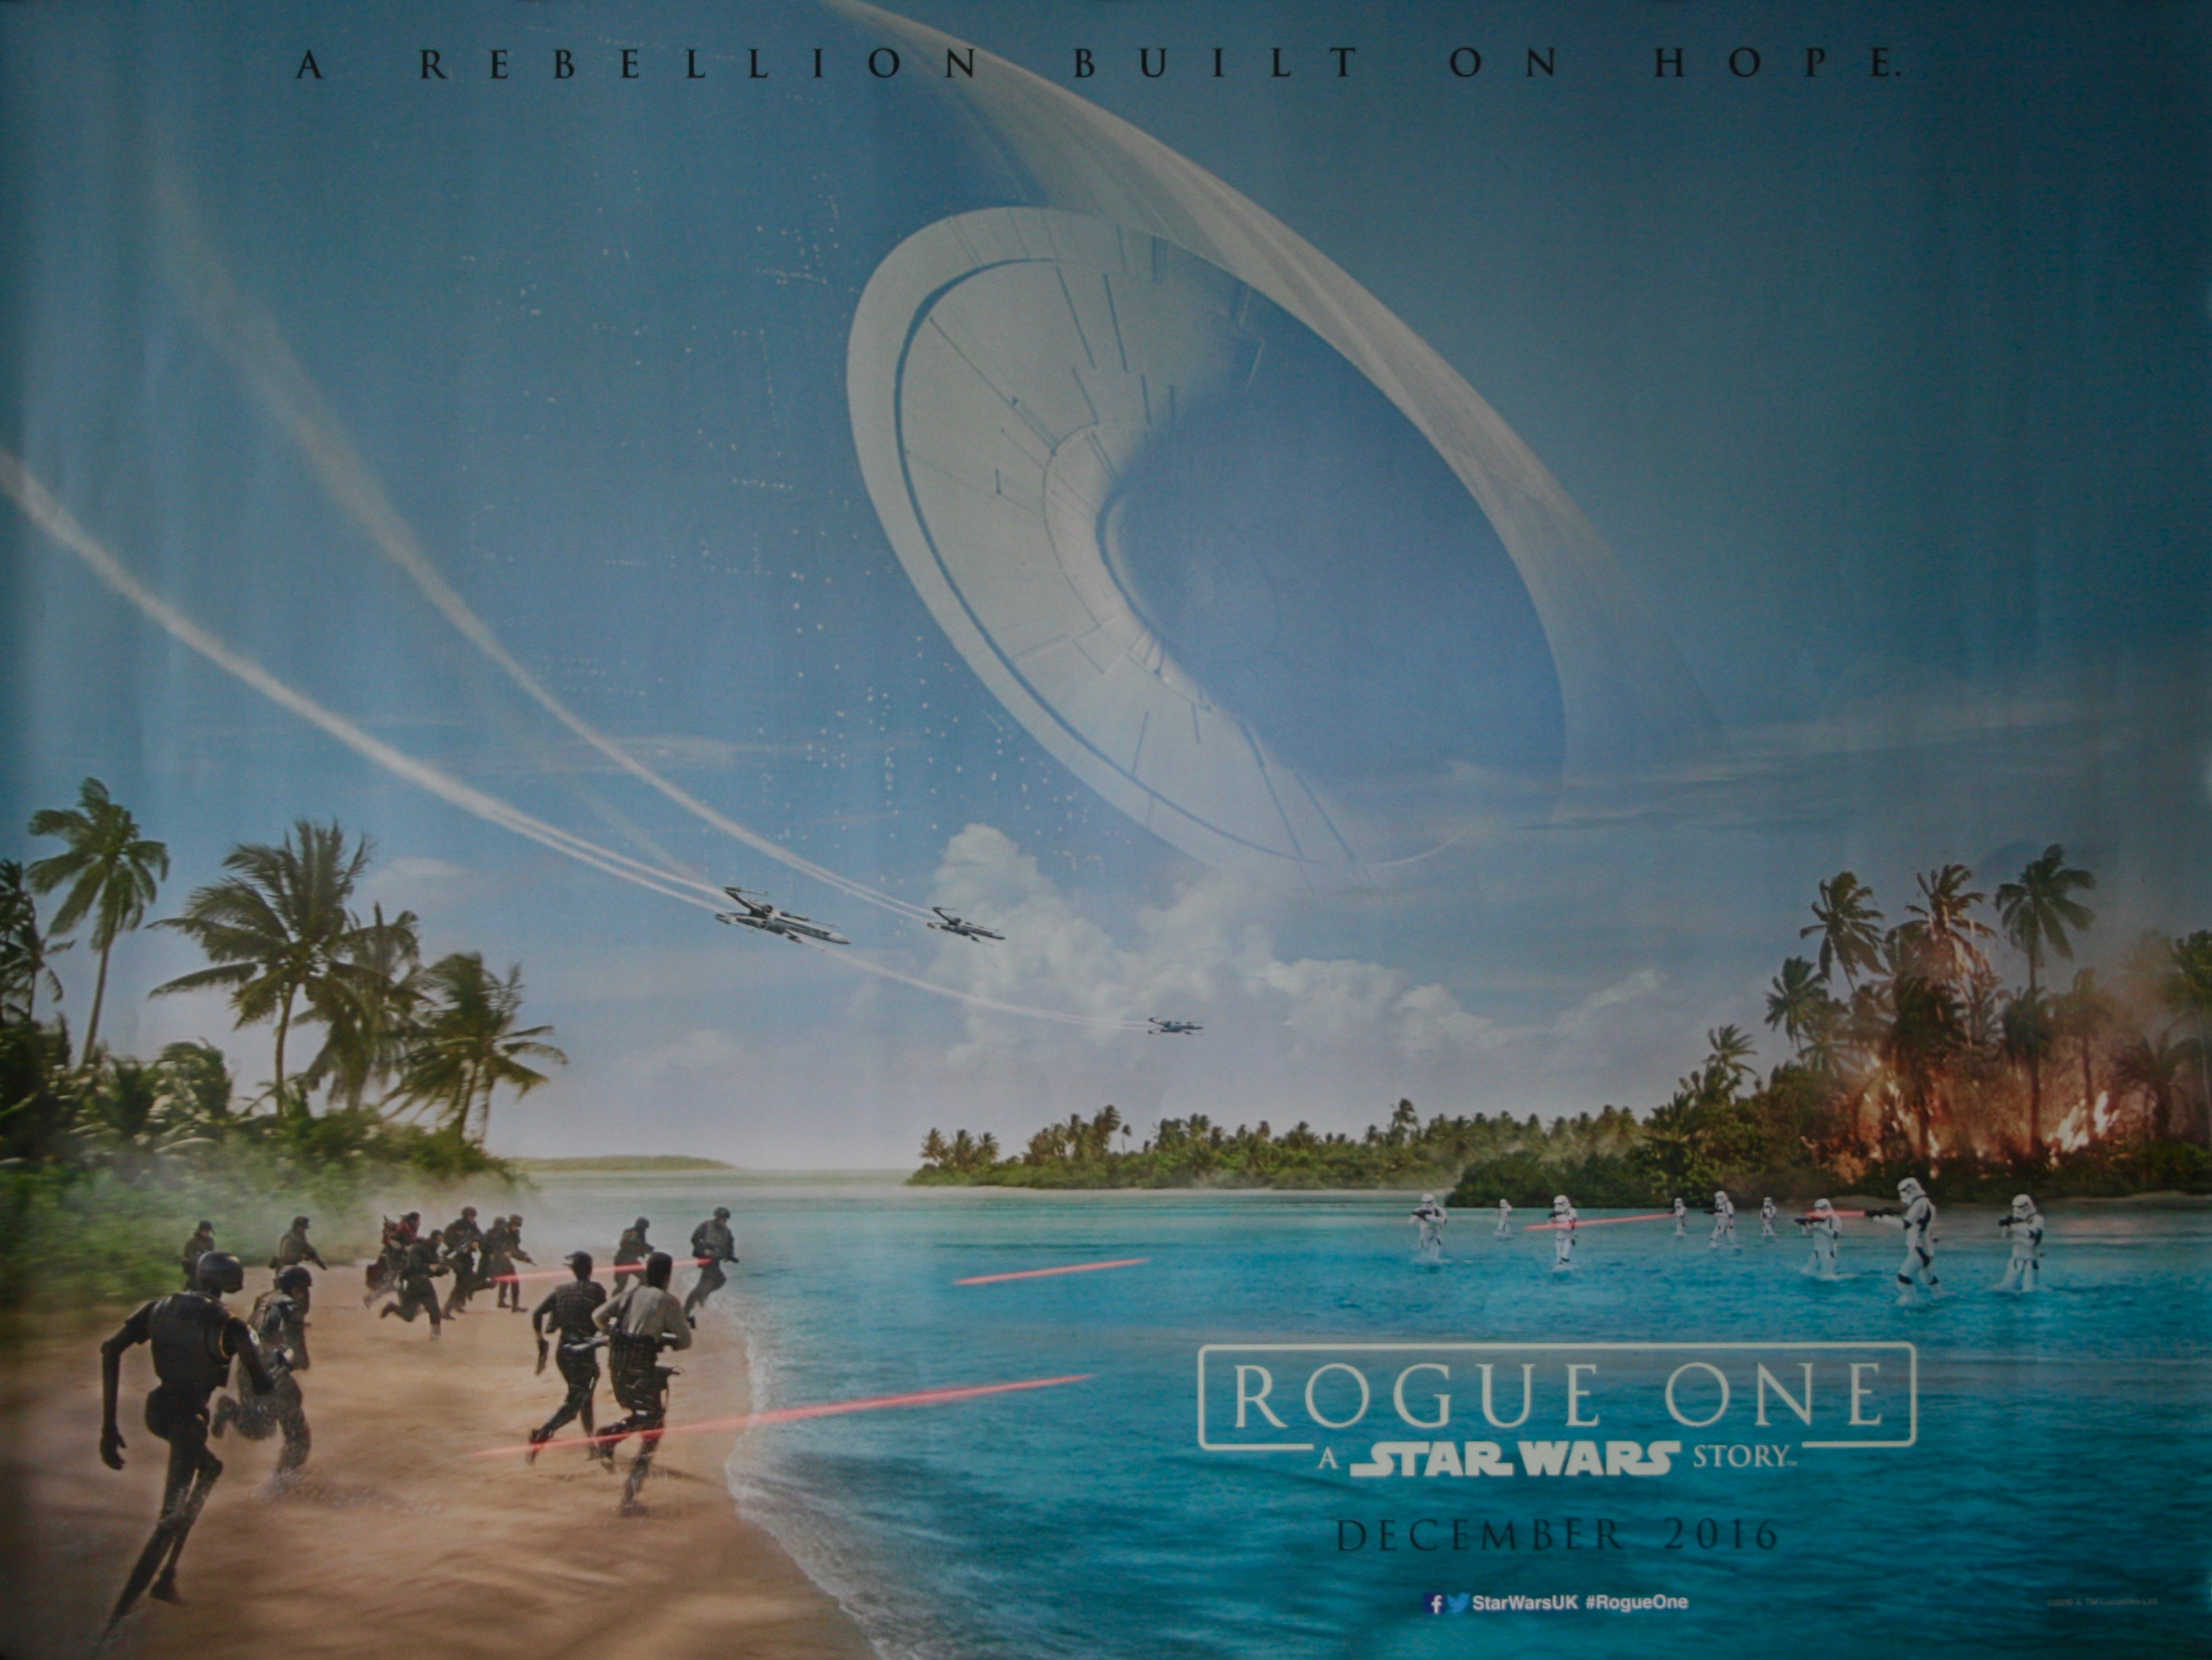 Rogue-One-A-Star-Wars-Story-Movie-Poster